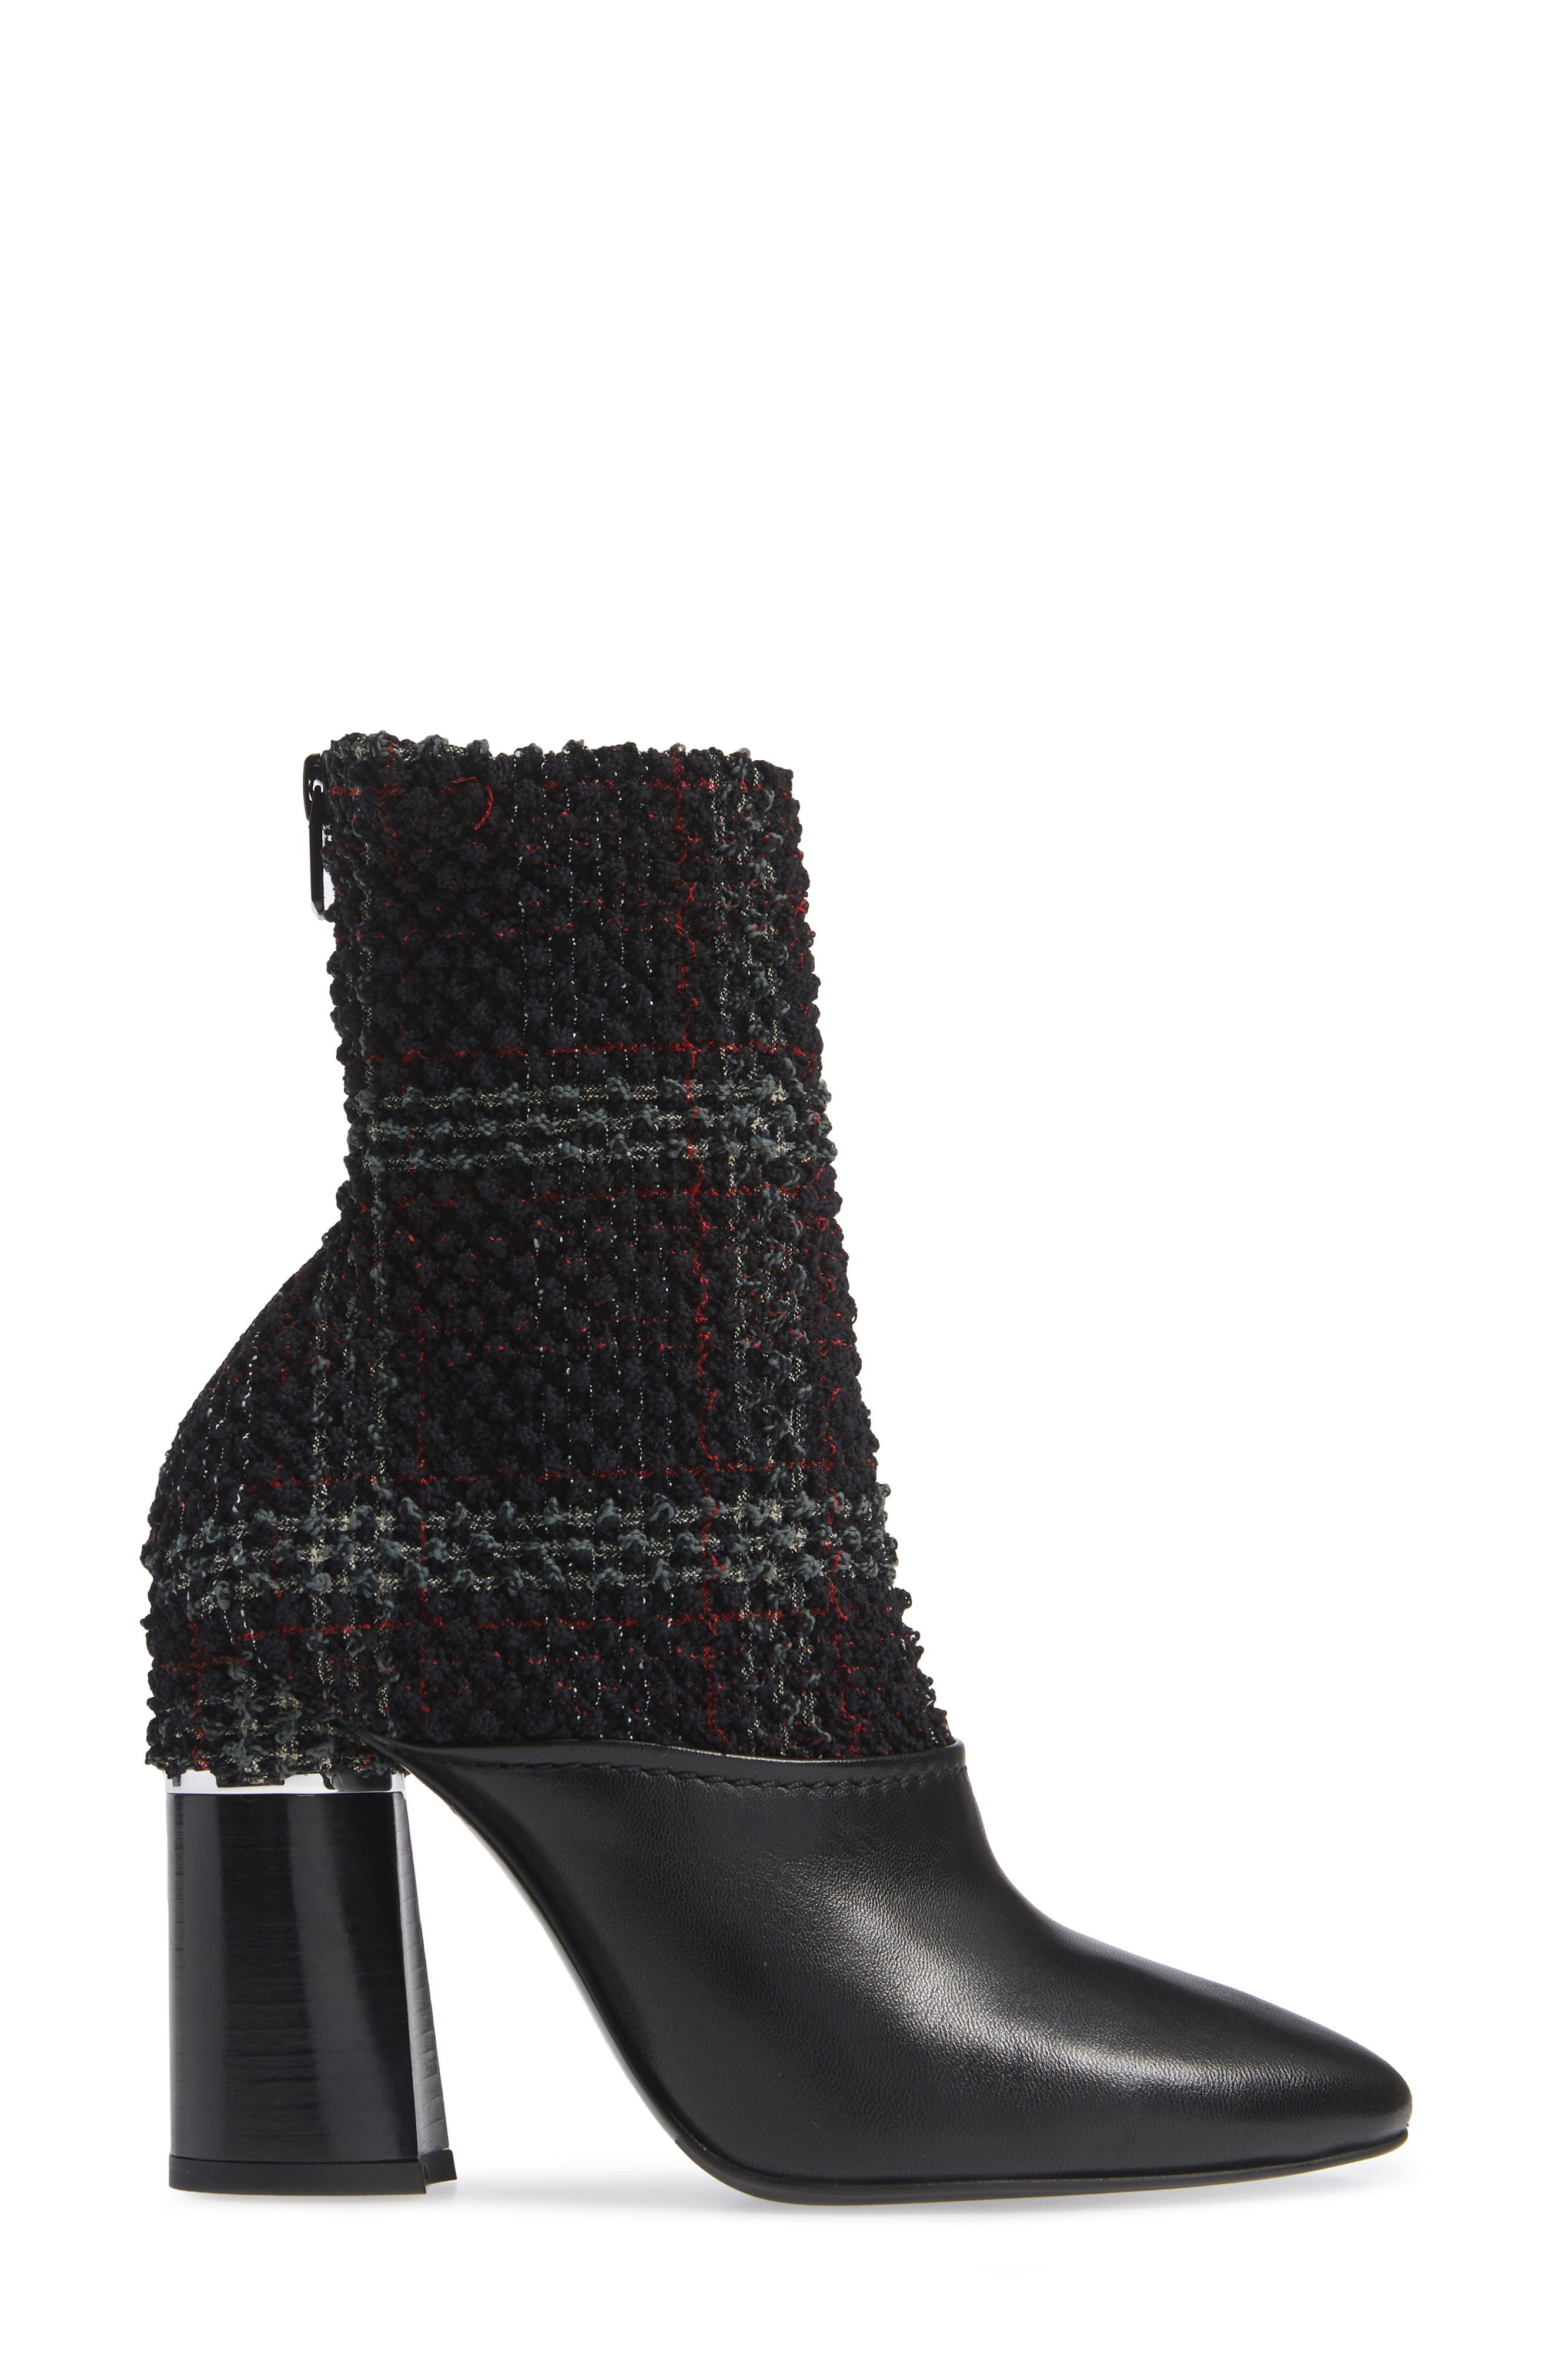 Kyoto Leather Bootie,                             Alternate thumbnail 3, color,                             BLACK/ GREEN/ RED CHECK